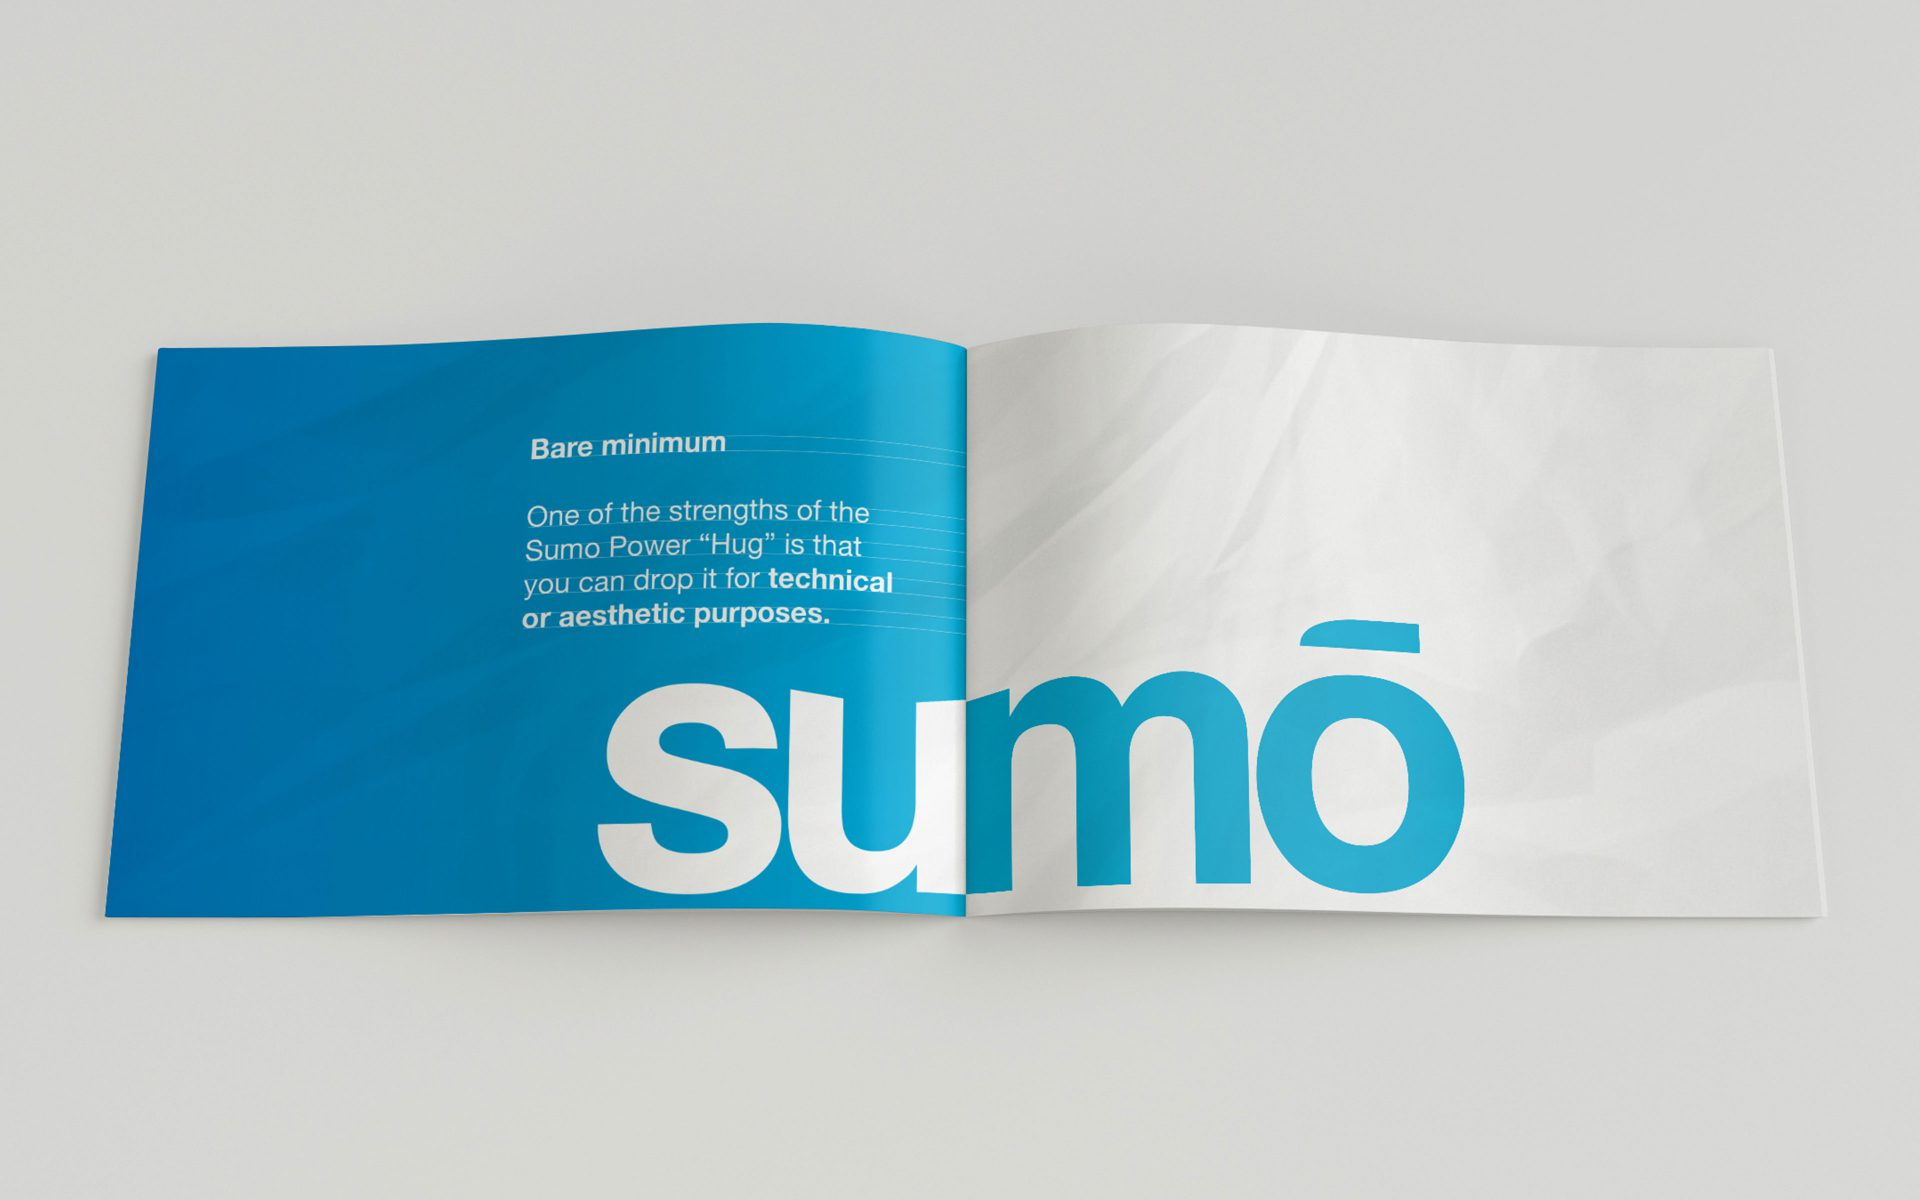 Sumo Power brand style guide